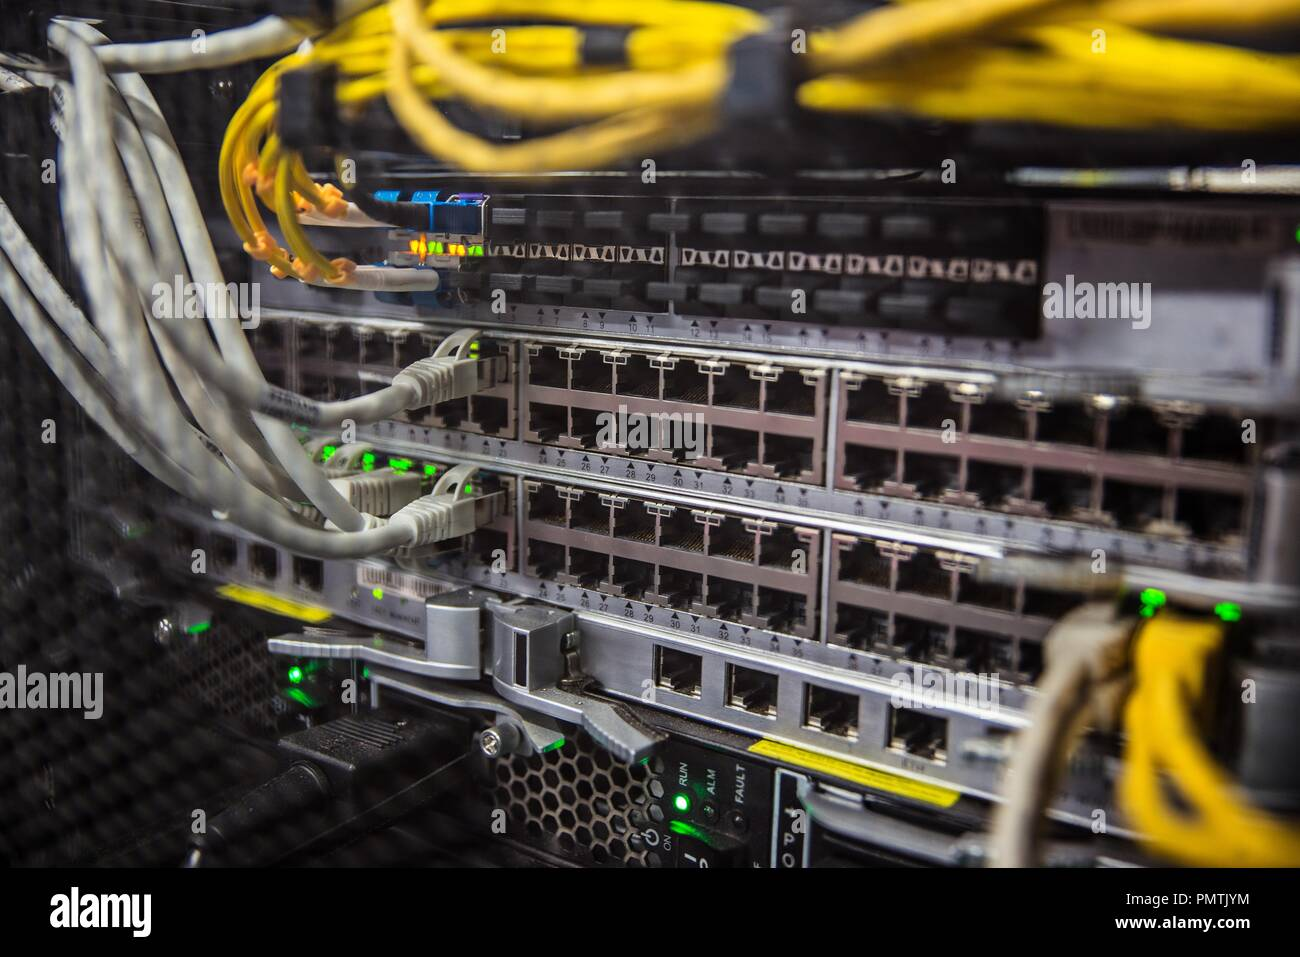 hight resolution of wiring for routers wiring diagram paper network server and internet wires internet network routers wires network